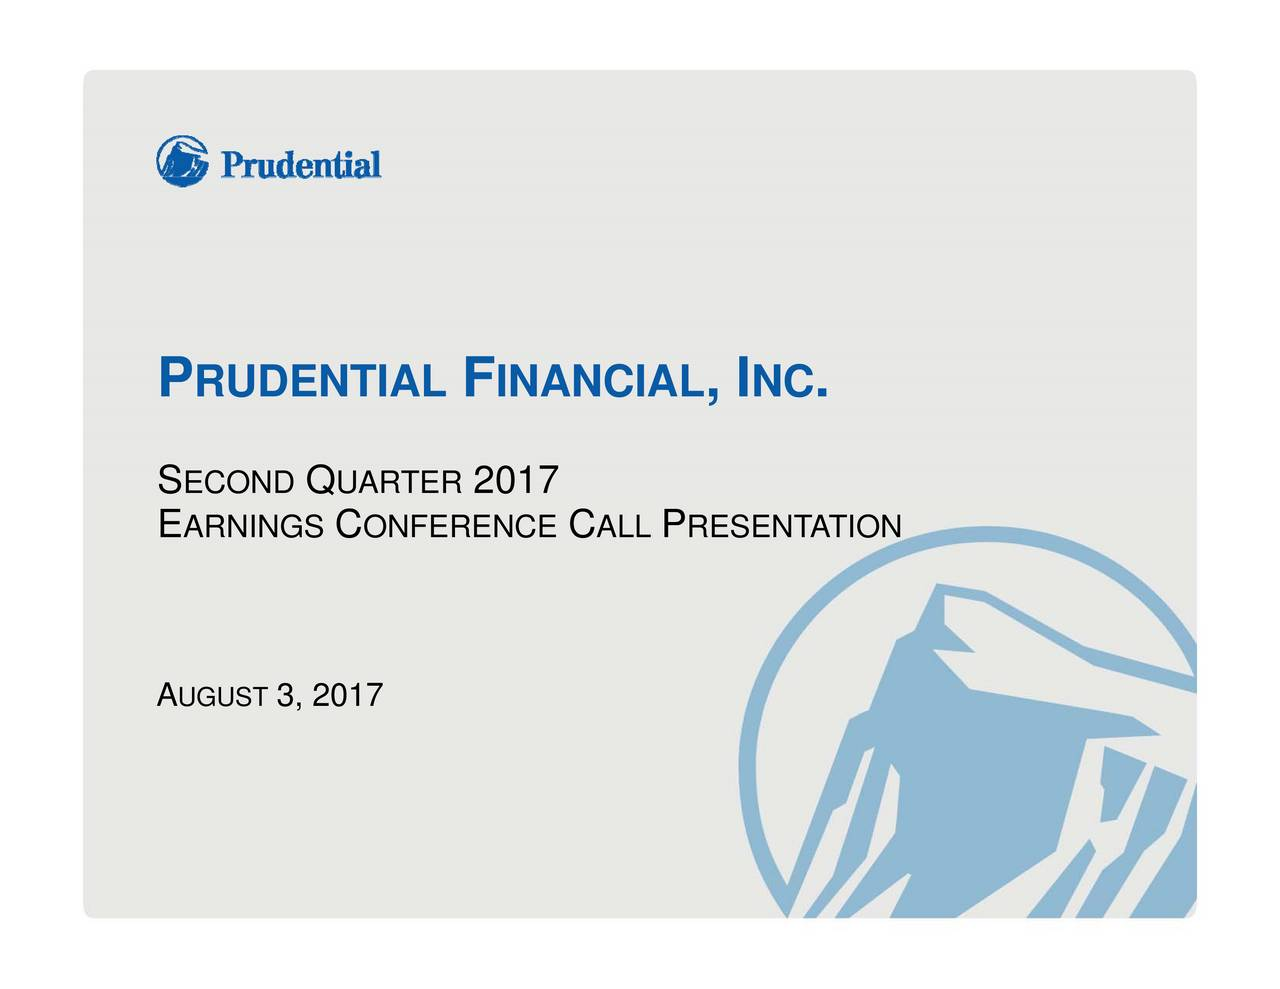 Prudential Financial Inc 2017 Q2 Results Earnings Call Slides